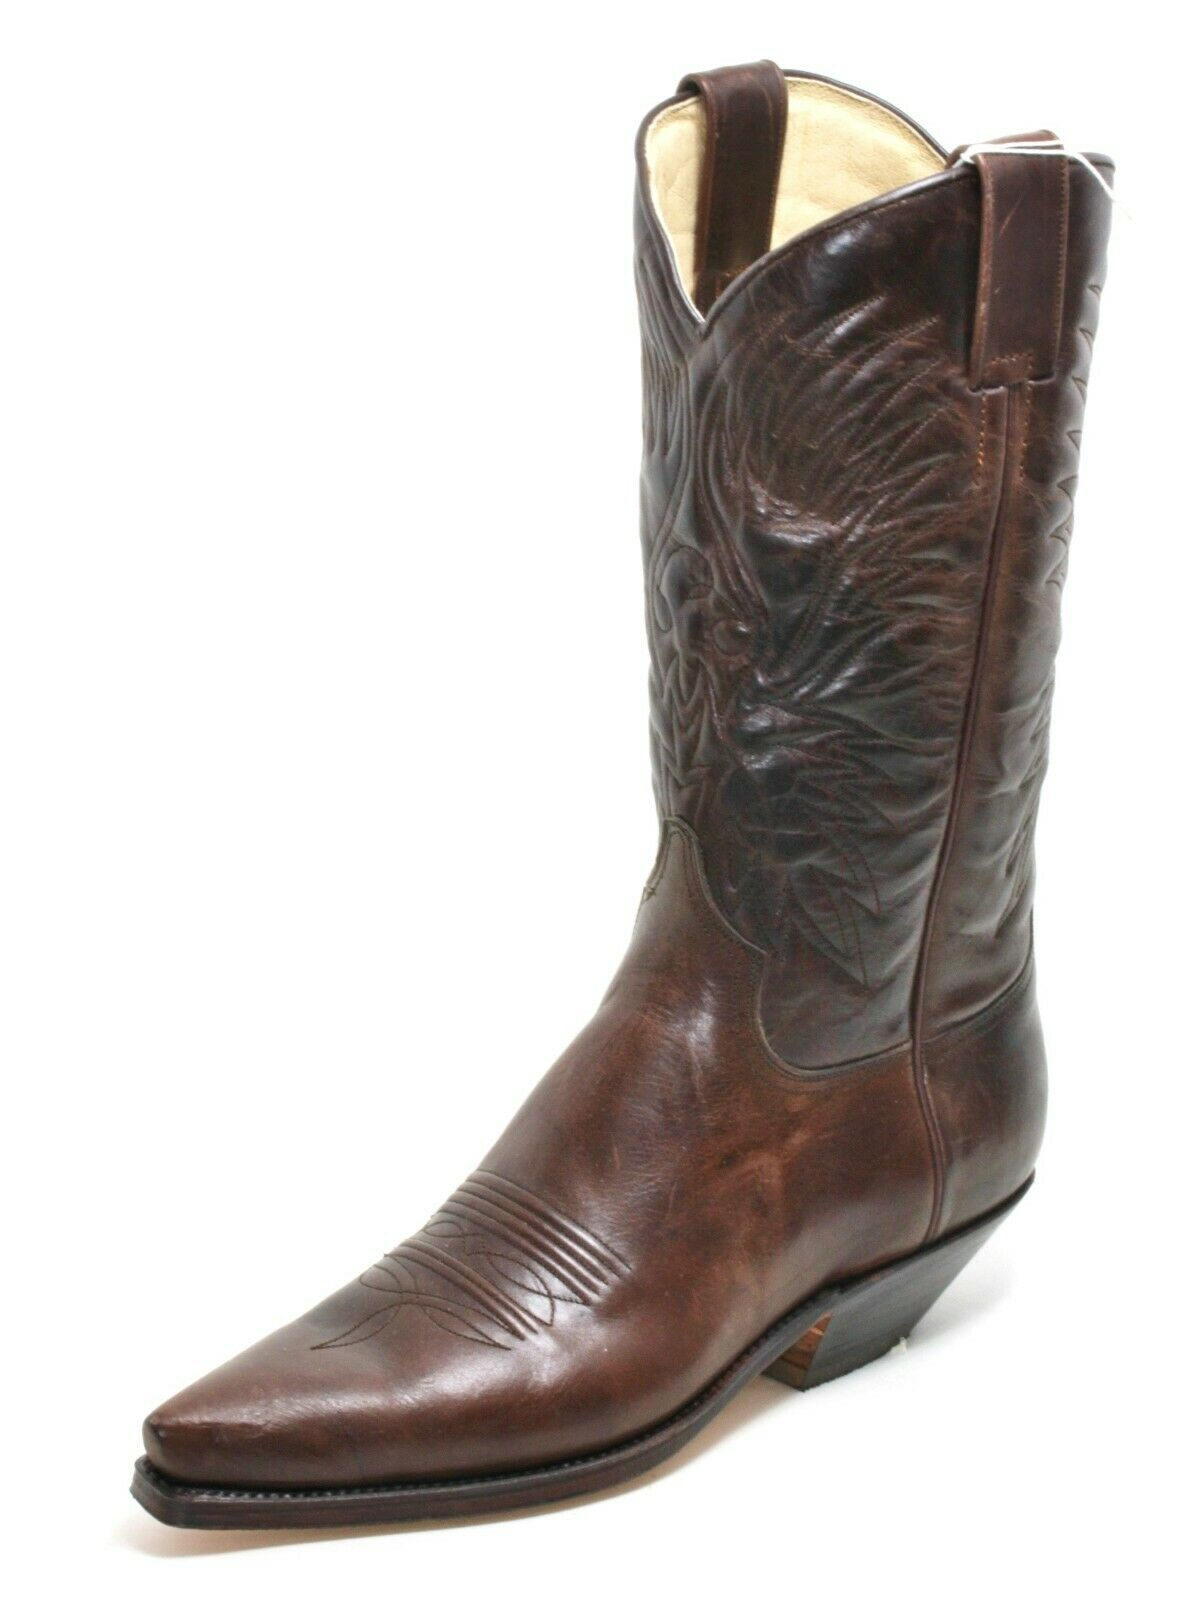 346 Westernstiefel Cowboy Boots Line Dance Catalan Style Buffalo by Vidal 37